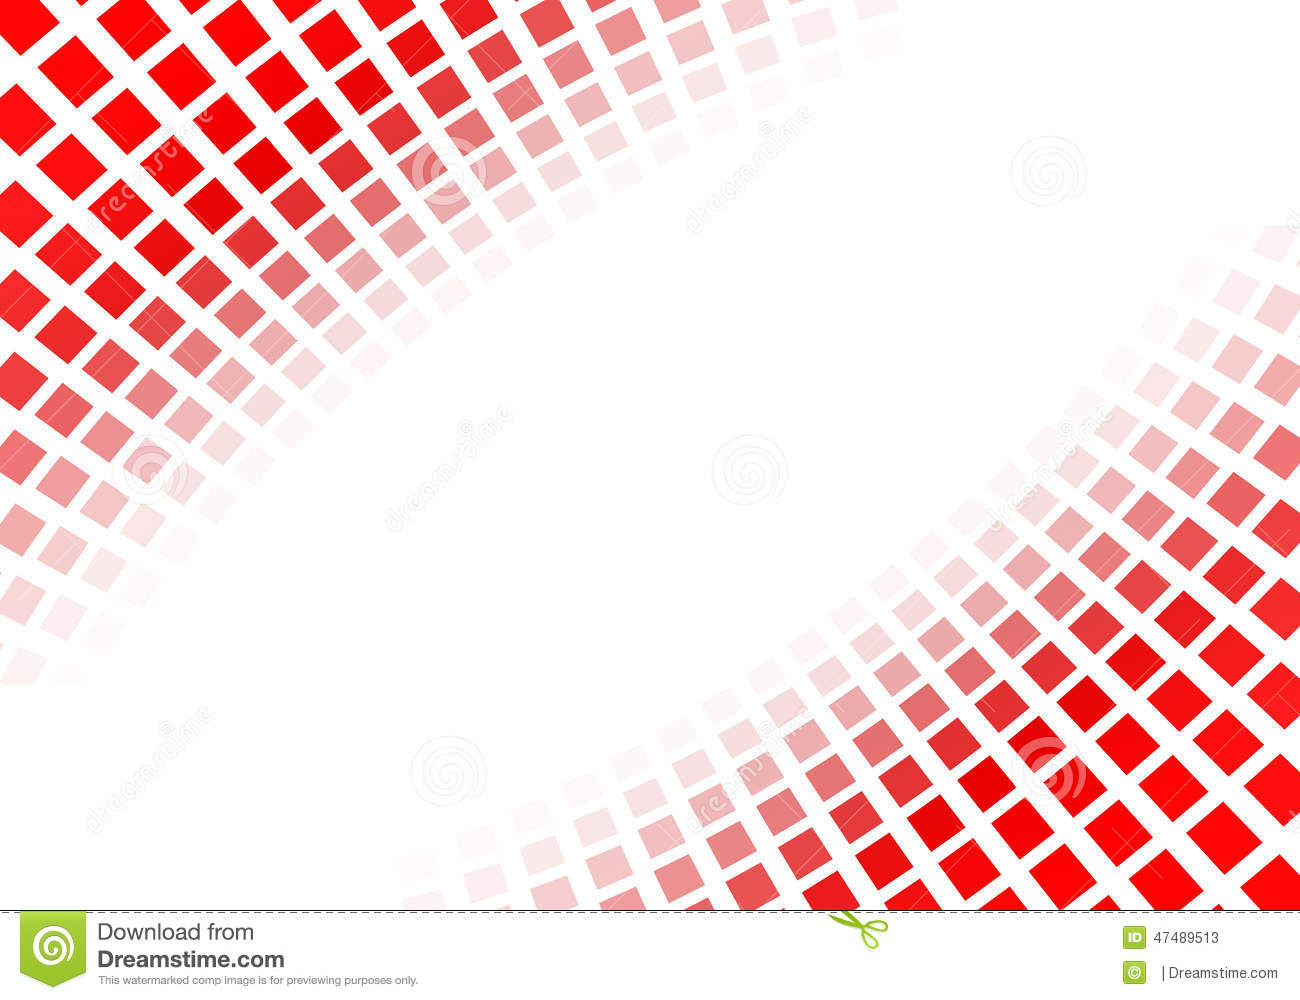 Abstract red squares stock illustration Illustration of